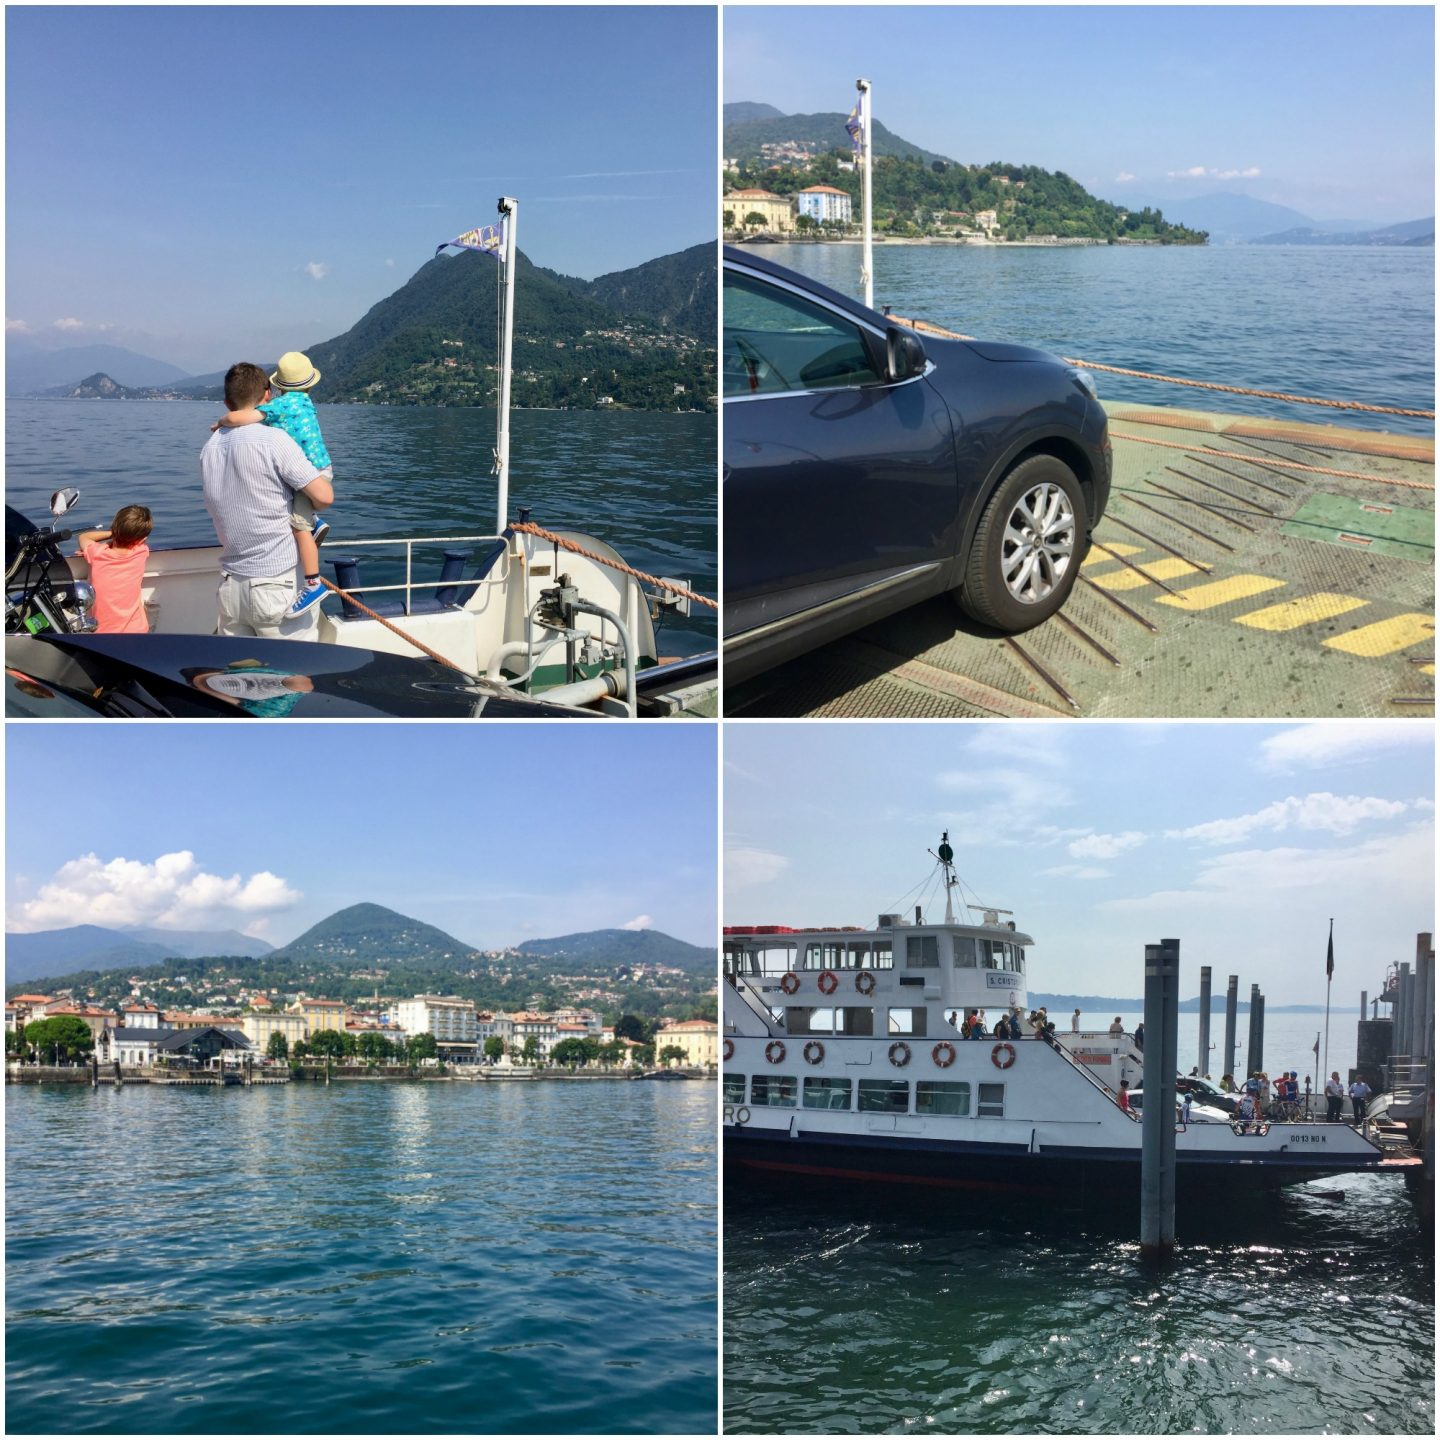 things to do with kids near Lake Maggiore, Italian Lakes - car ferry ride